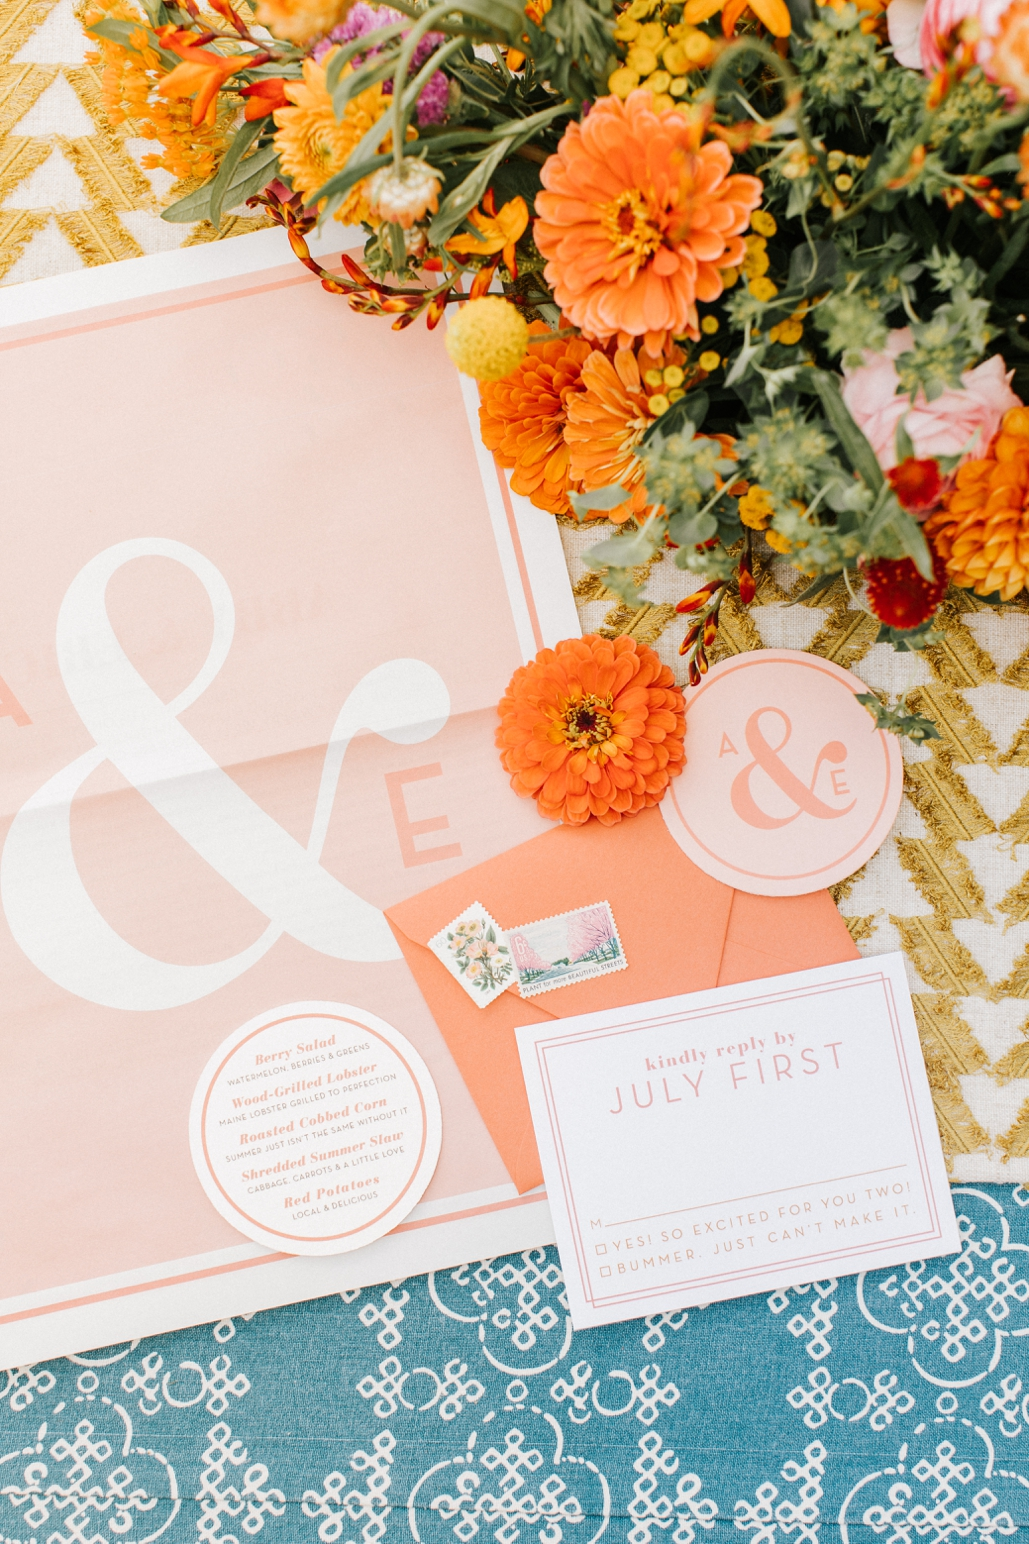 custom wedding newspaper program, modern wedding inspiration for boho brides and camp weddings. large oversized jumbo wedding invitations, with calligraphy envelopes and vintage stamps